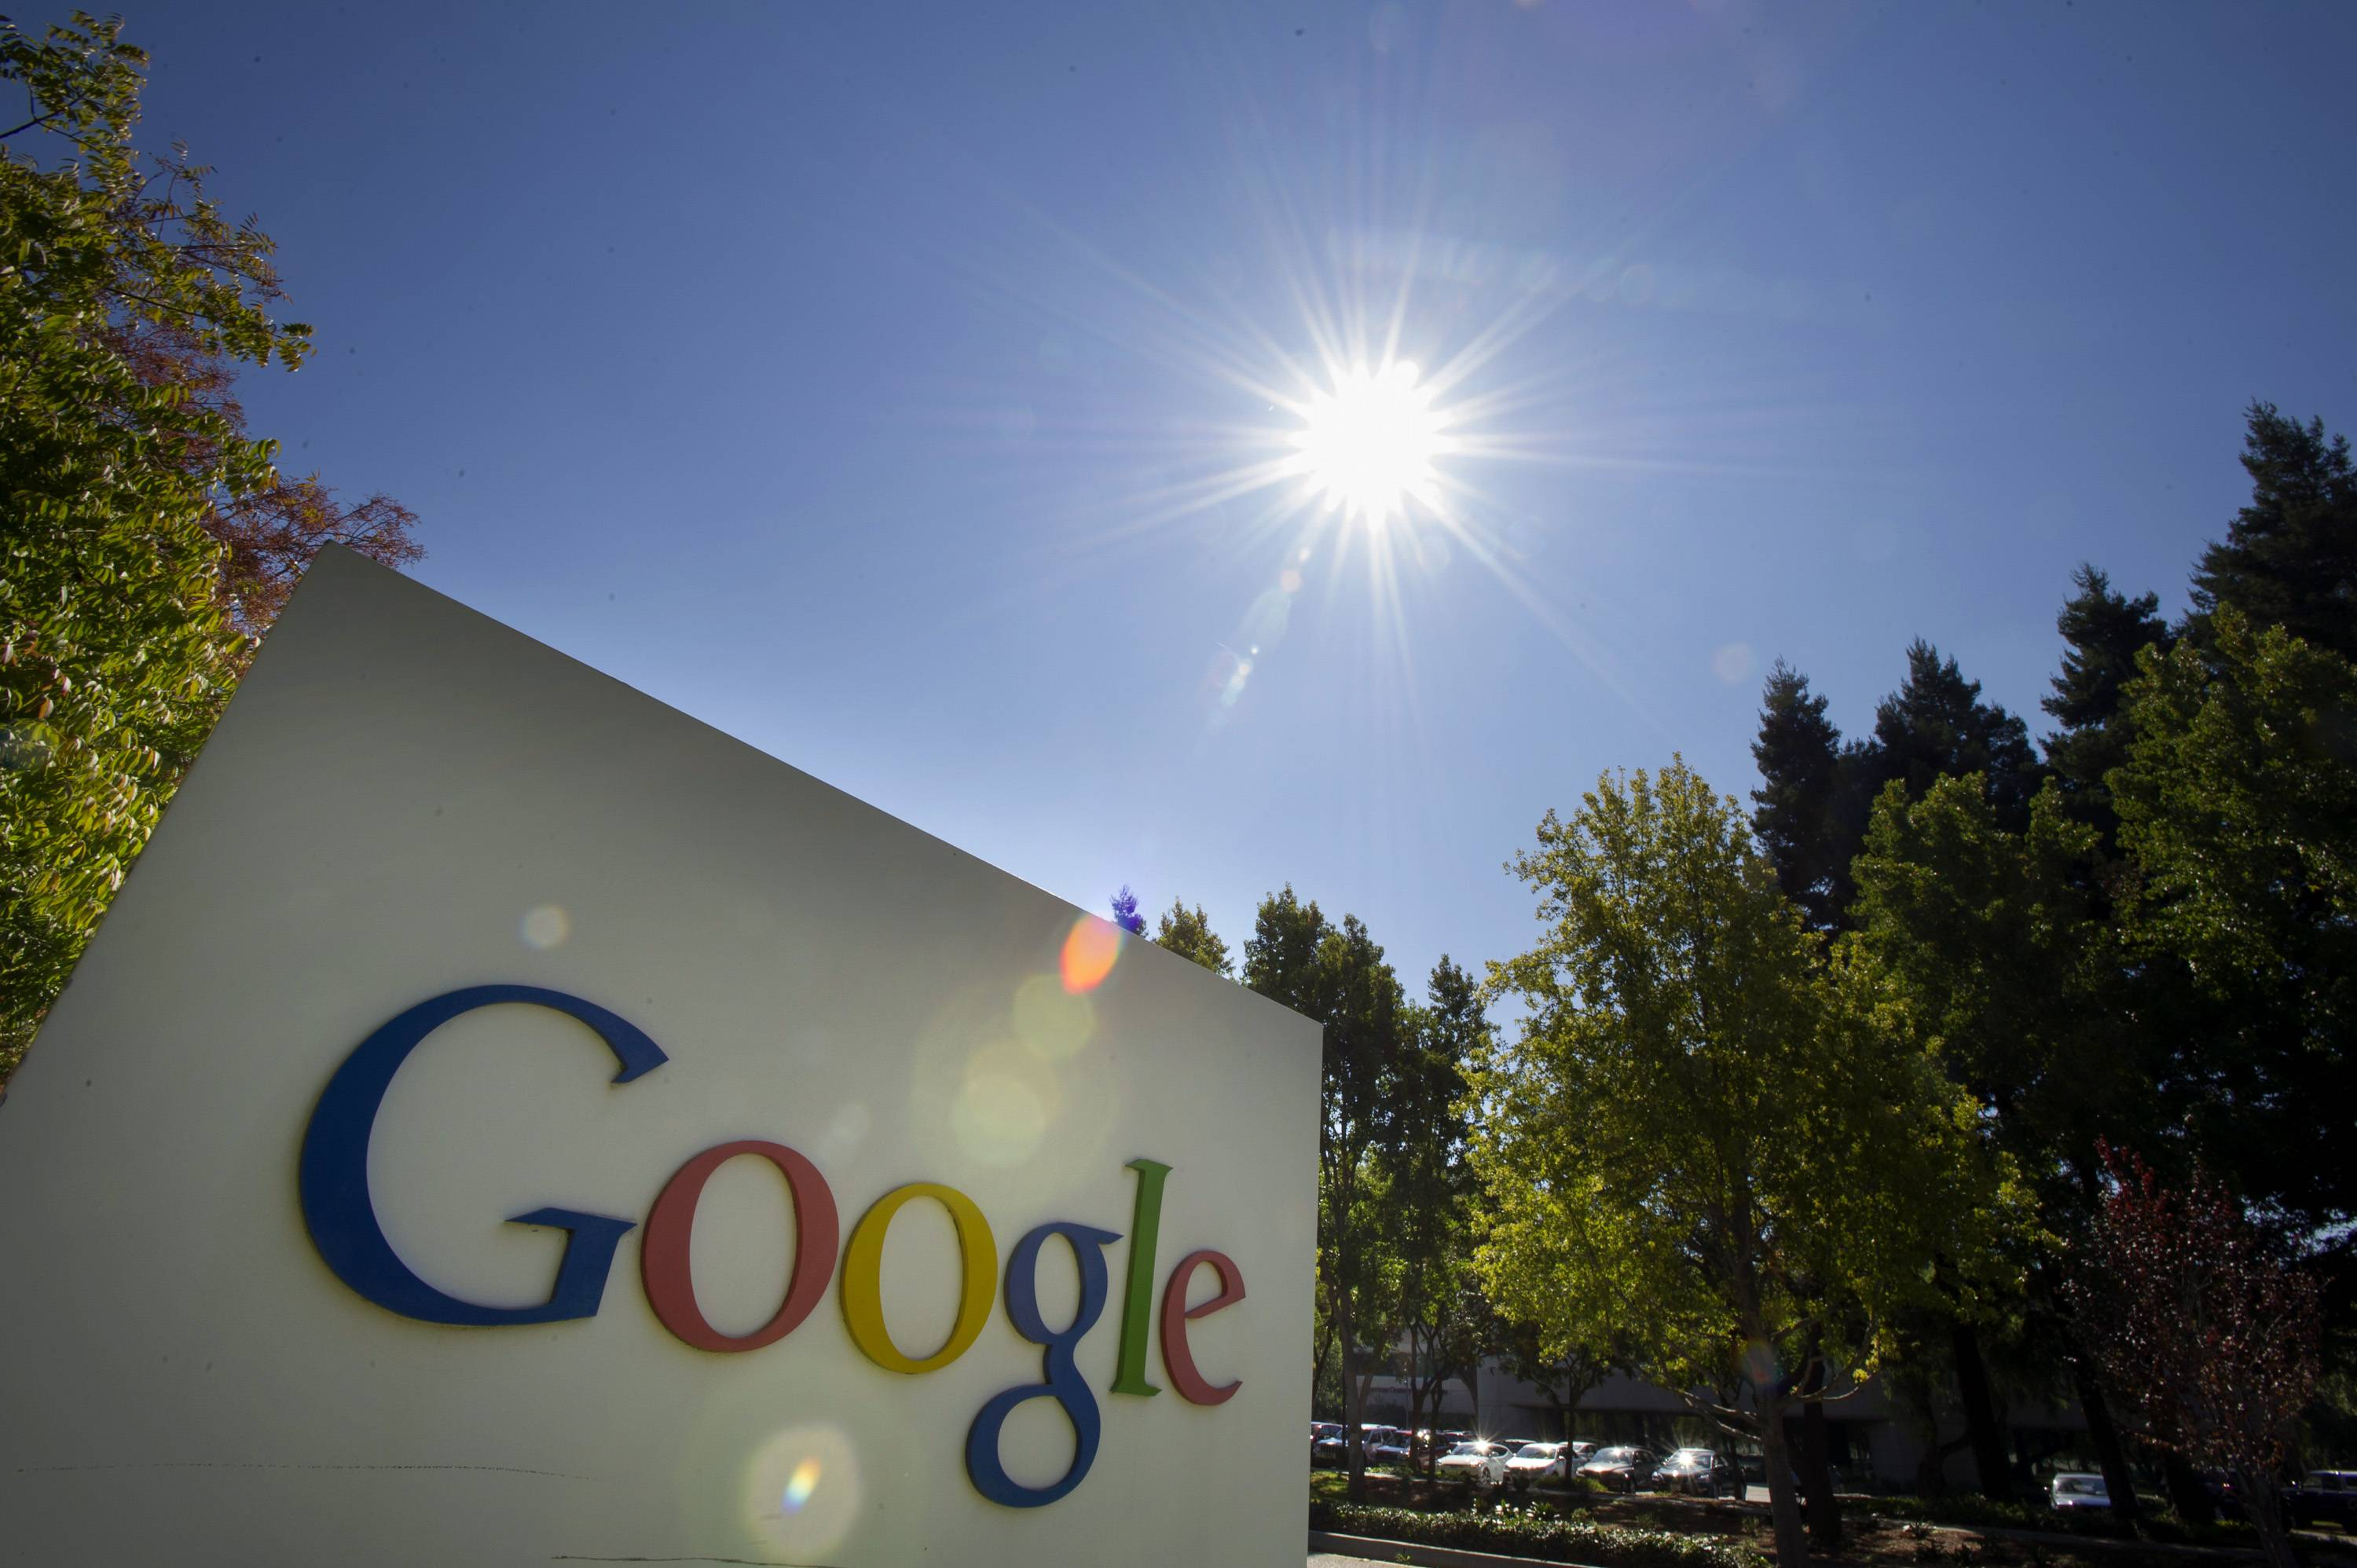 The U.S government has picked a Google subsidiary to run and renovate a federal airfield that is frequently used for the personal flights of the Internet company's billionaire executives.